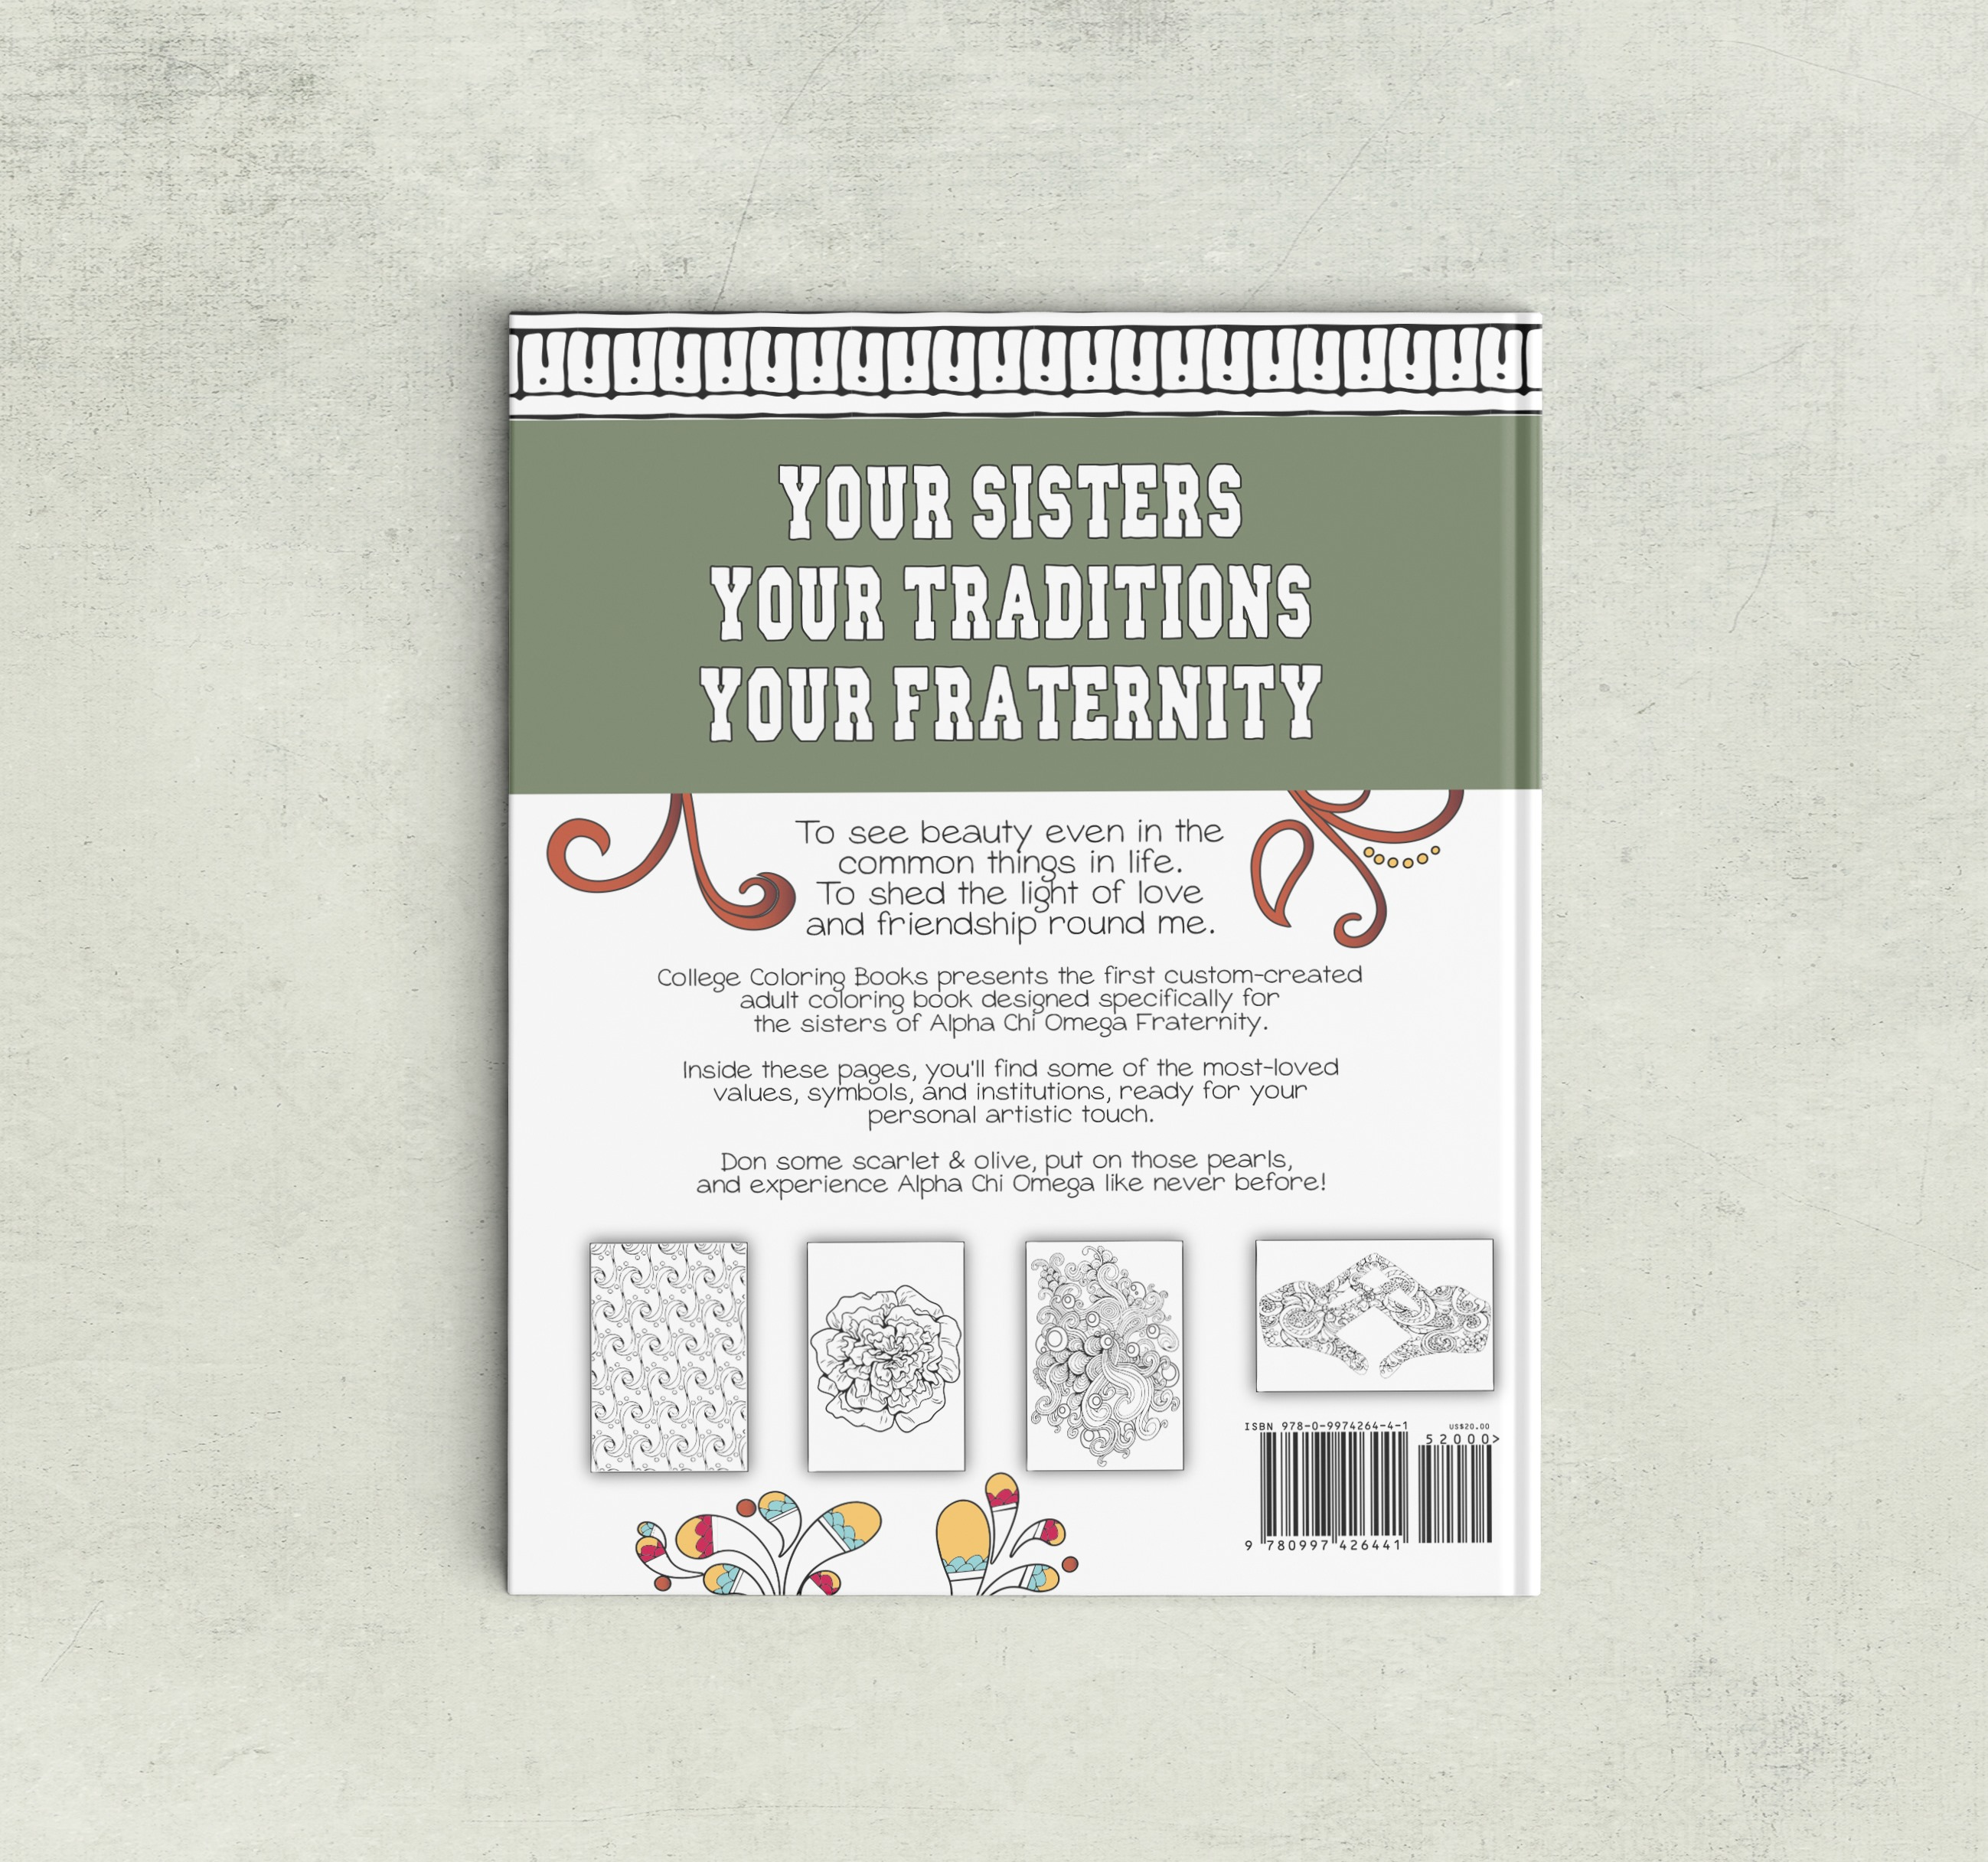 College Coloring Books Alpha Chi Omega Book Back Cover